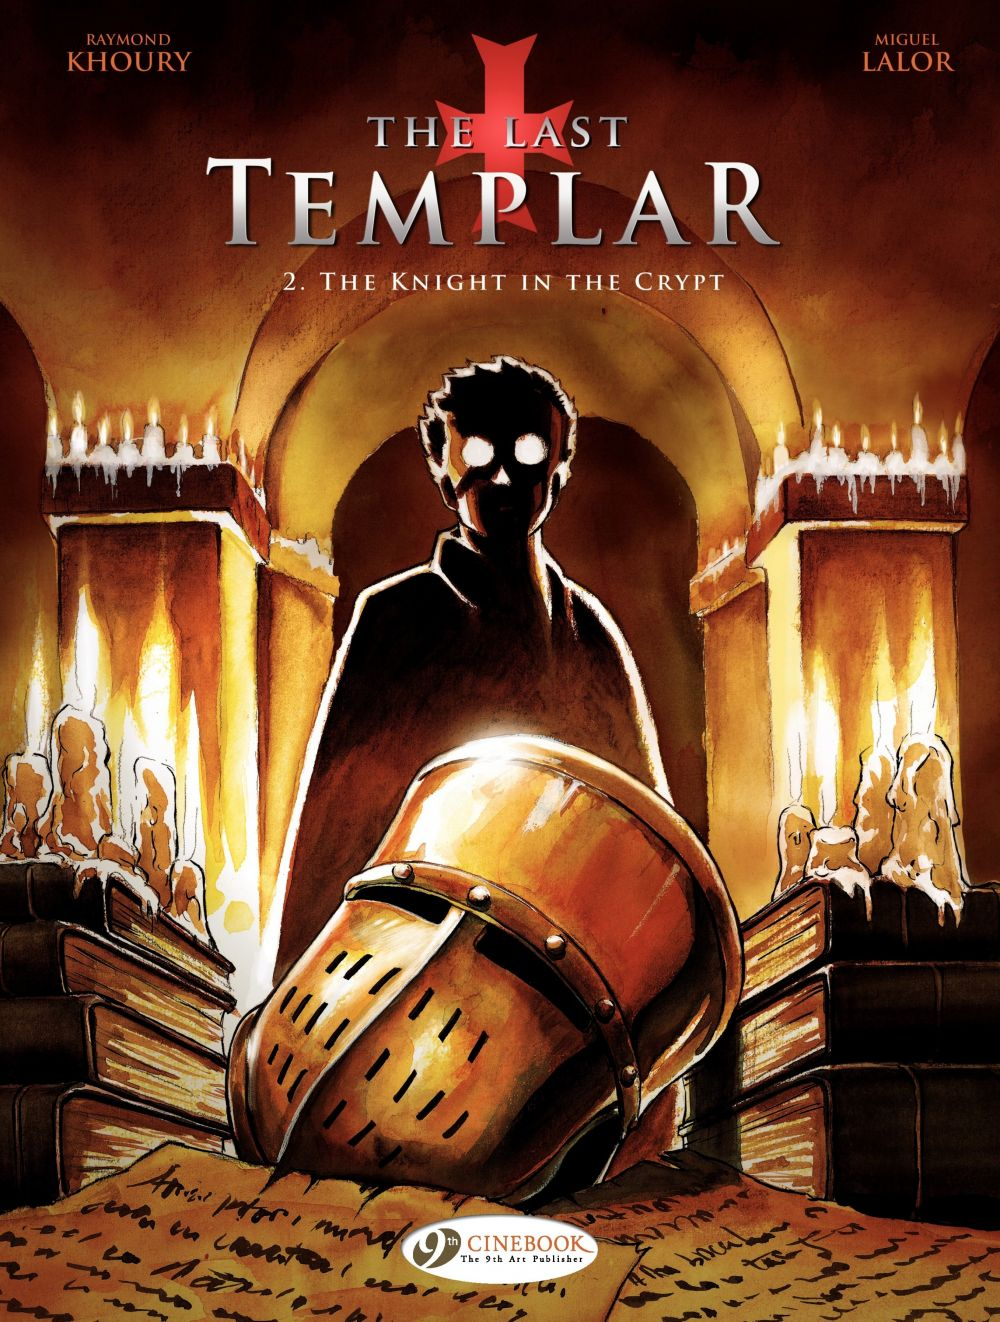 The Last Templar - Volume 2 - The Knight in the Crypt